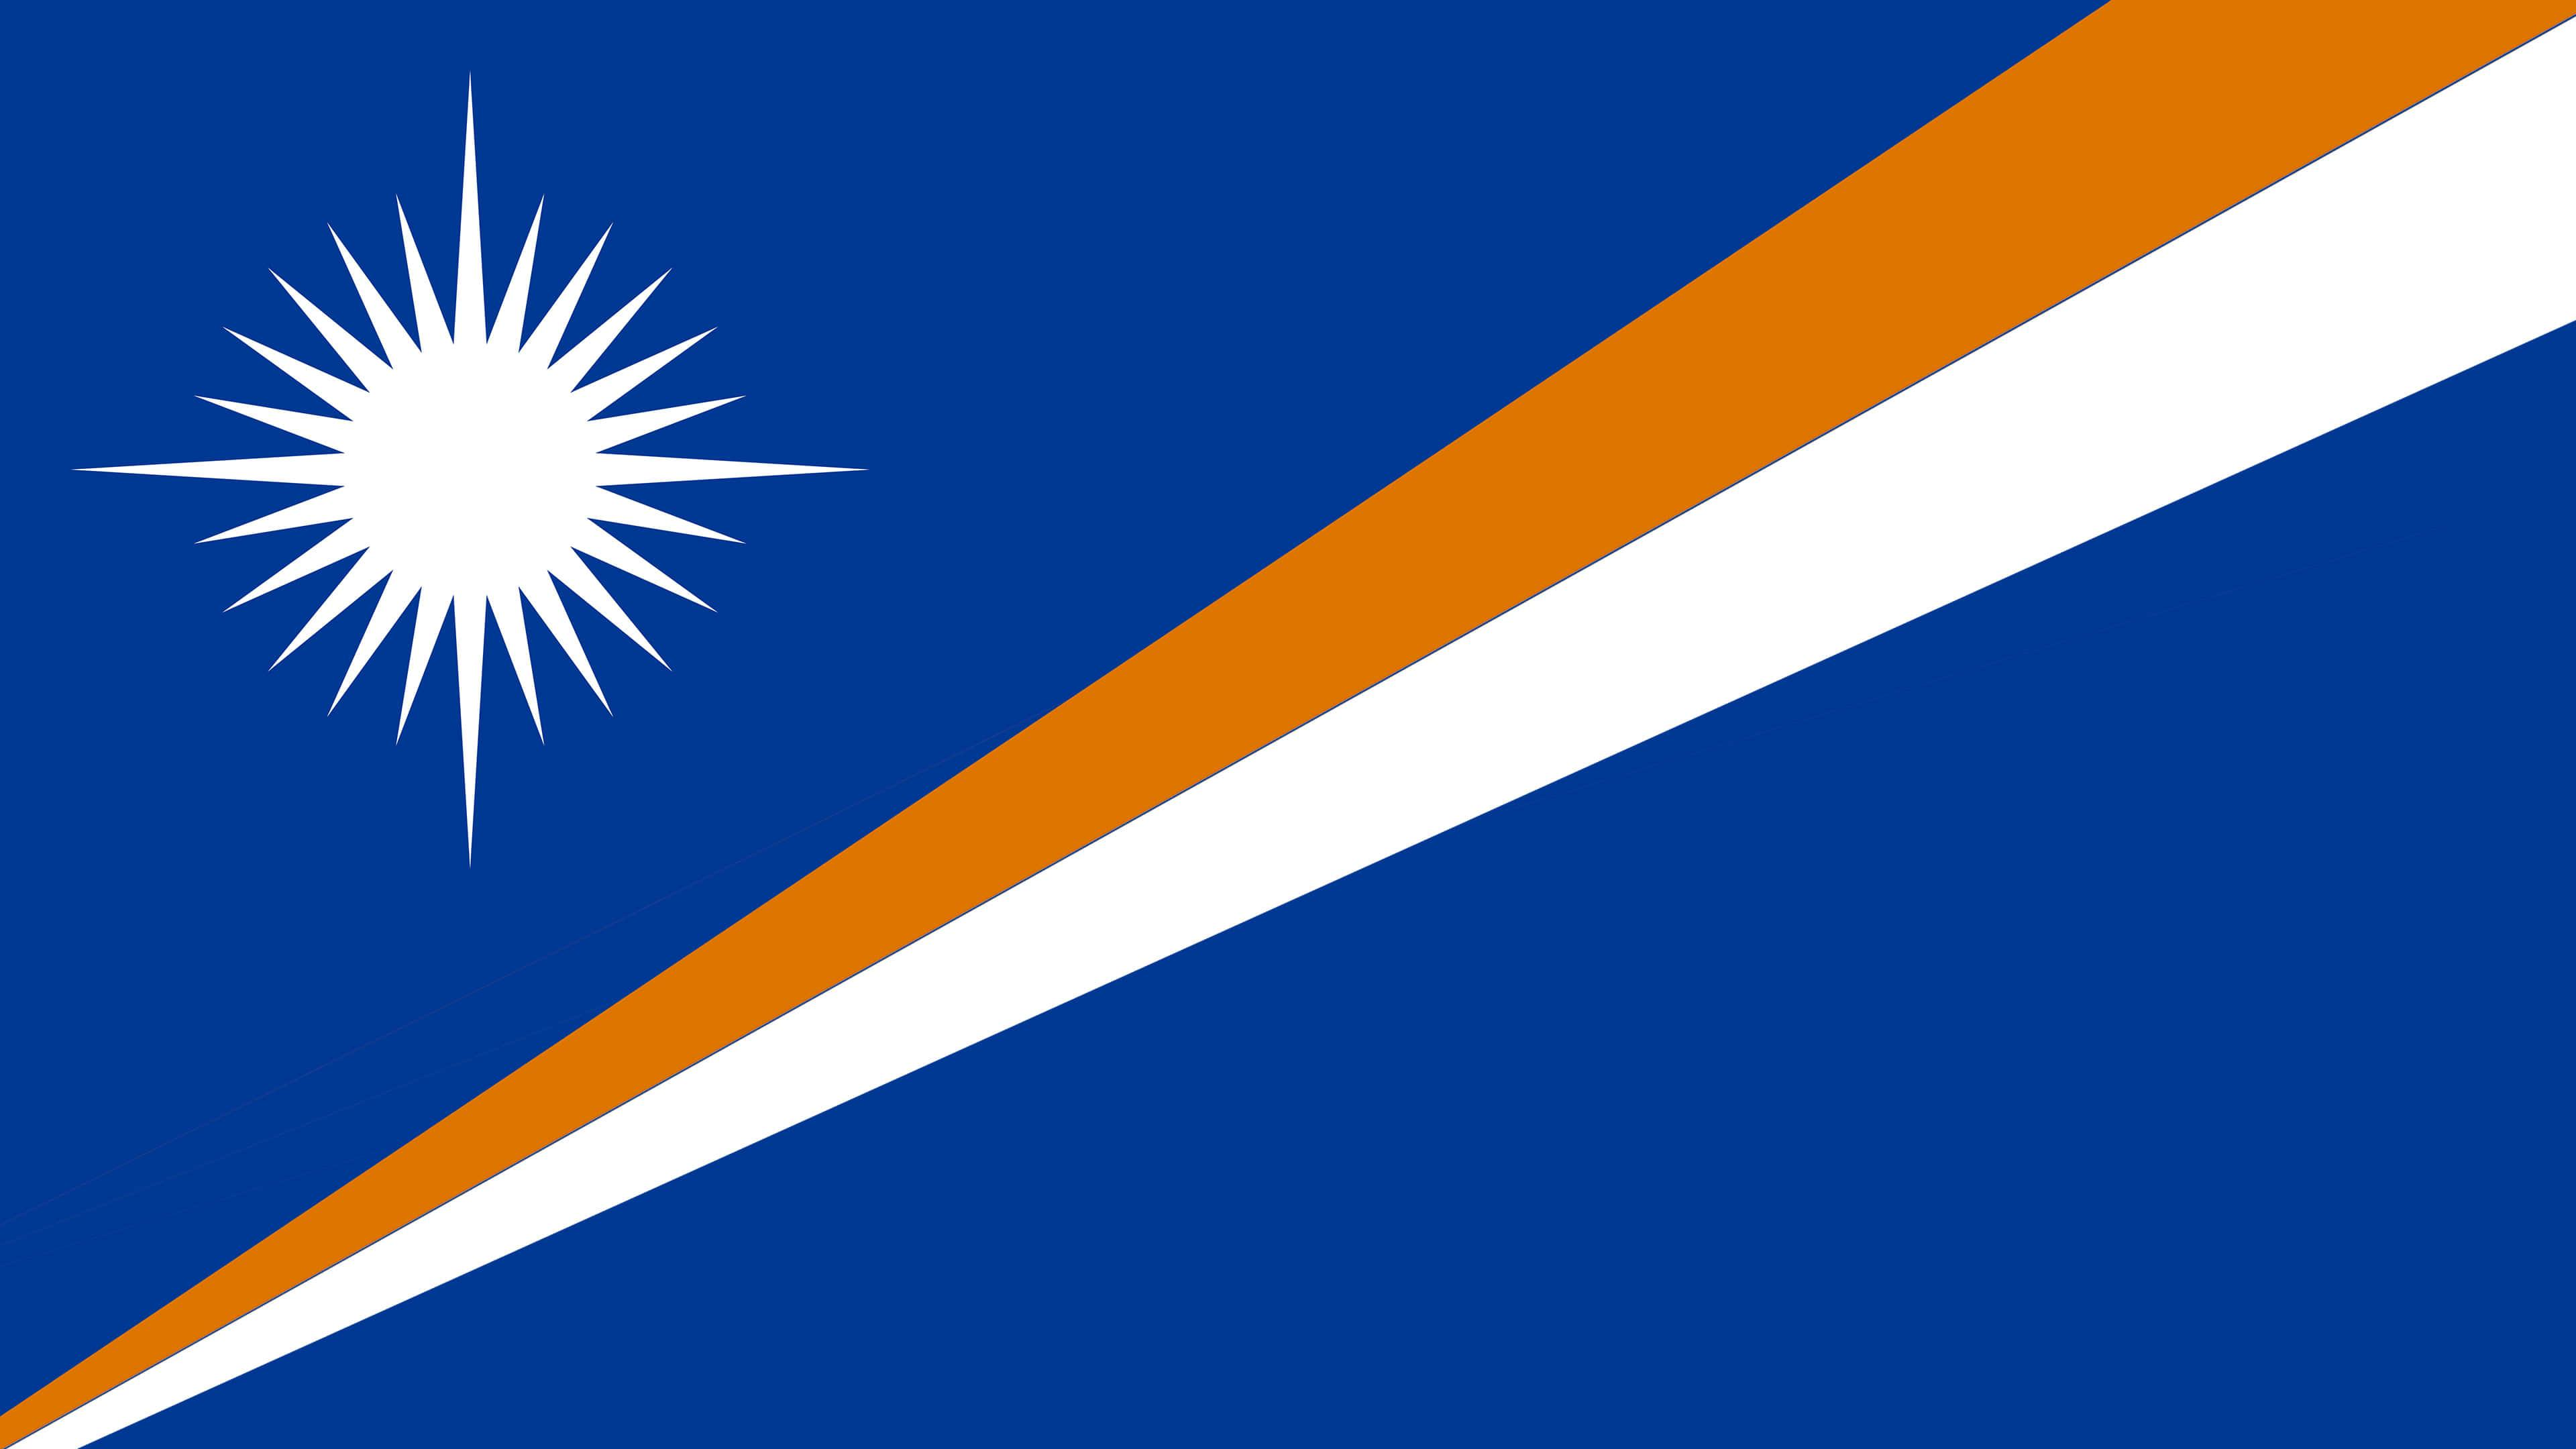 Marshall Islands Flag UHD 4K Wallpaper | Pixelz